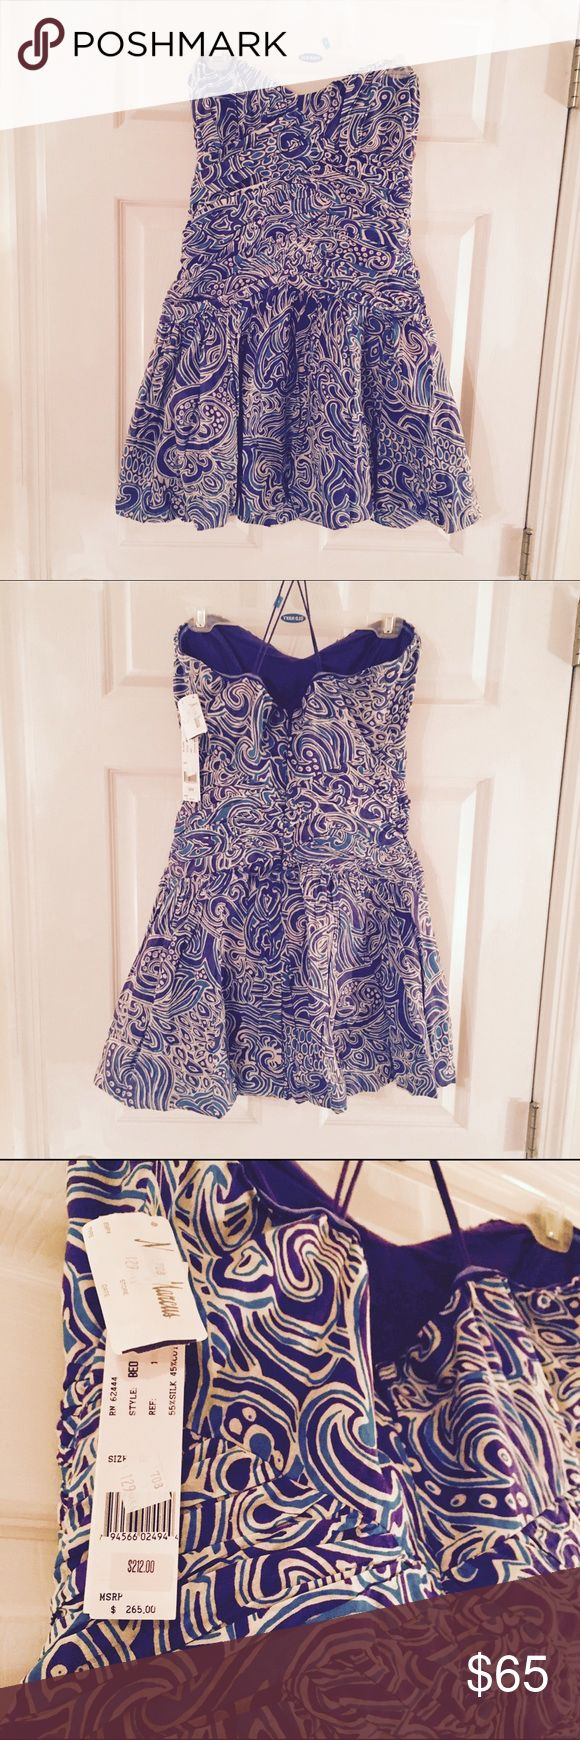 NWT Nicole Miller Strapless Party Dress Spring/Summer purple, blue, white structured sundress. Crisscross detailing in the front. Silk and cotton. Neiman Marcus Dresses Strapless